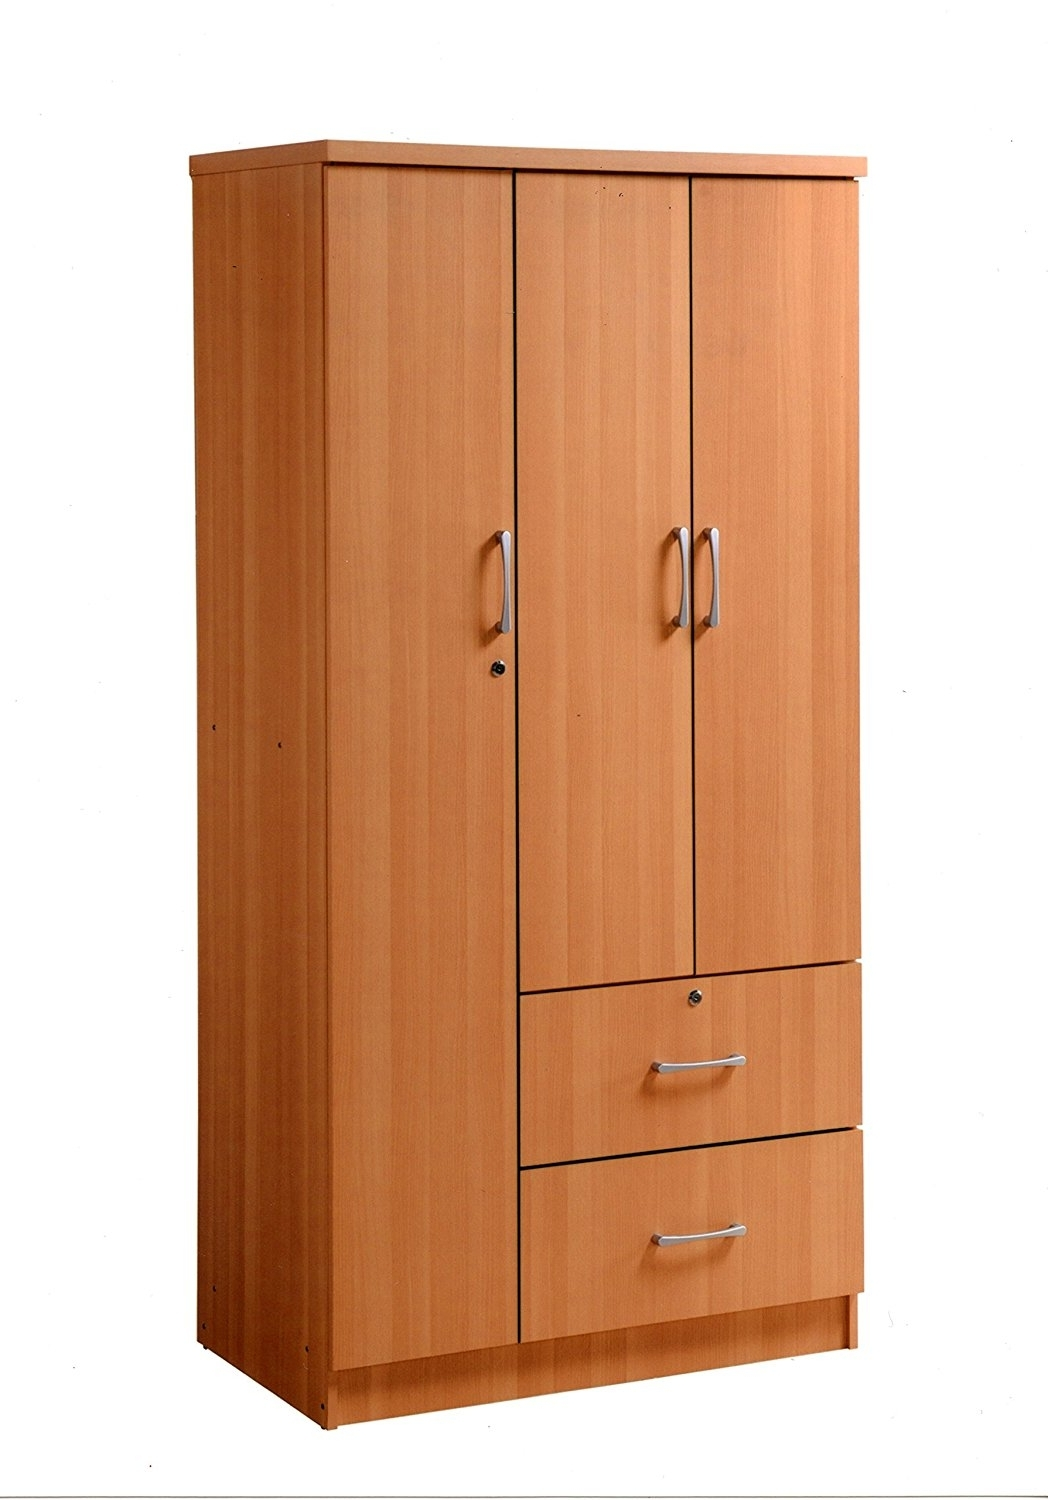 Three Door Wardrobes With Mirror Intended For Most Popular Amazon: Hodedah Import 3 Door Wardrobe, Black: Kitchen & Dining (View 8 of 15)